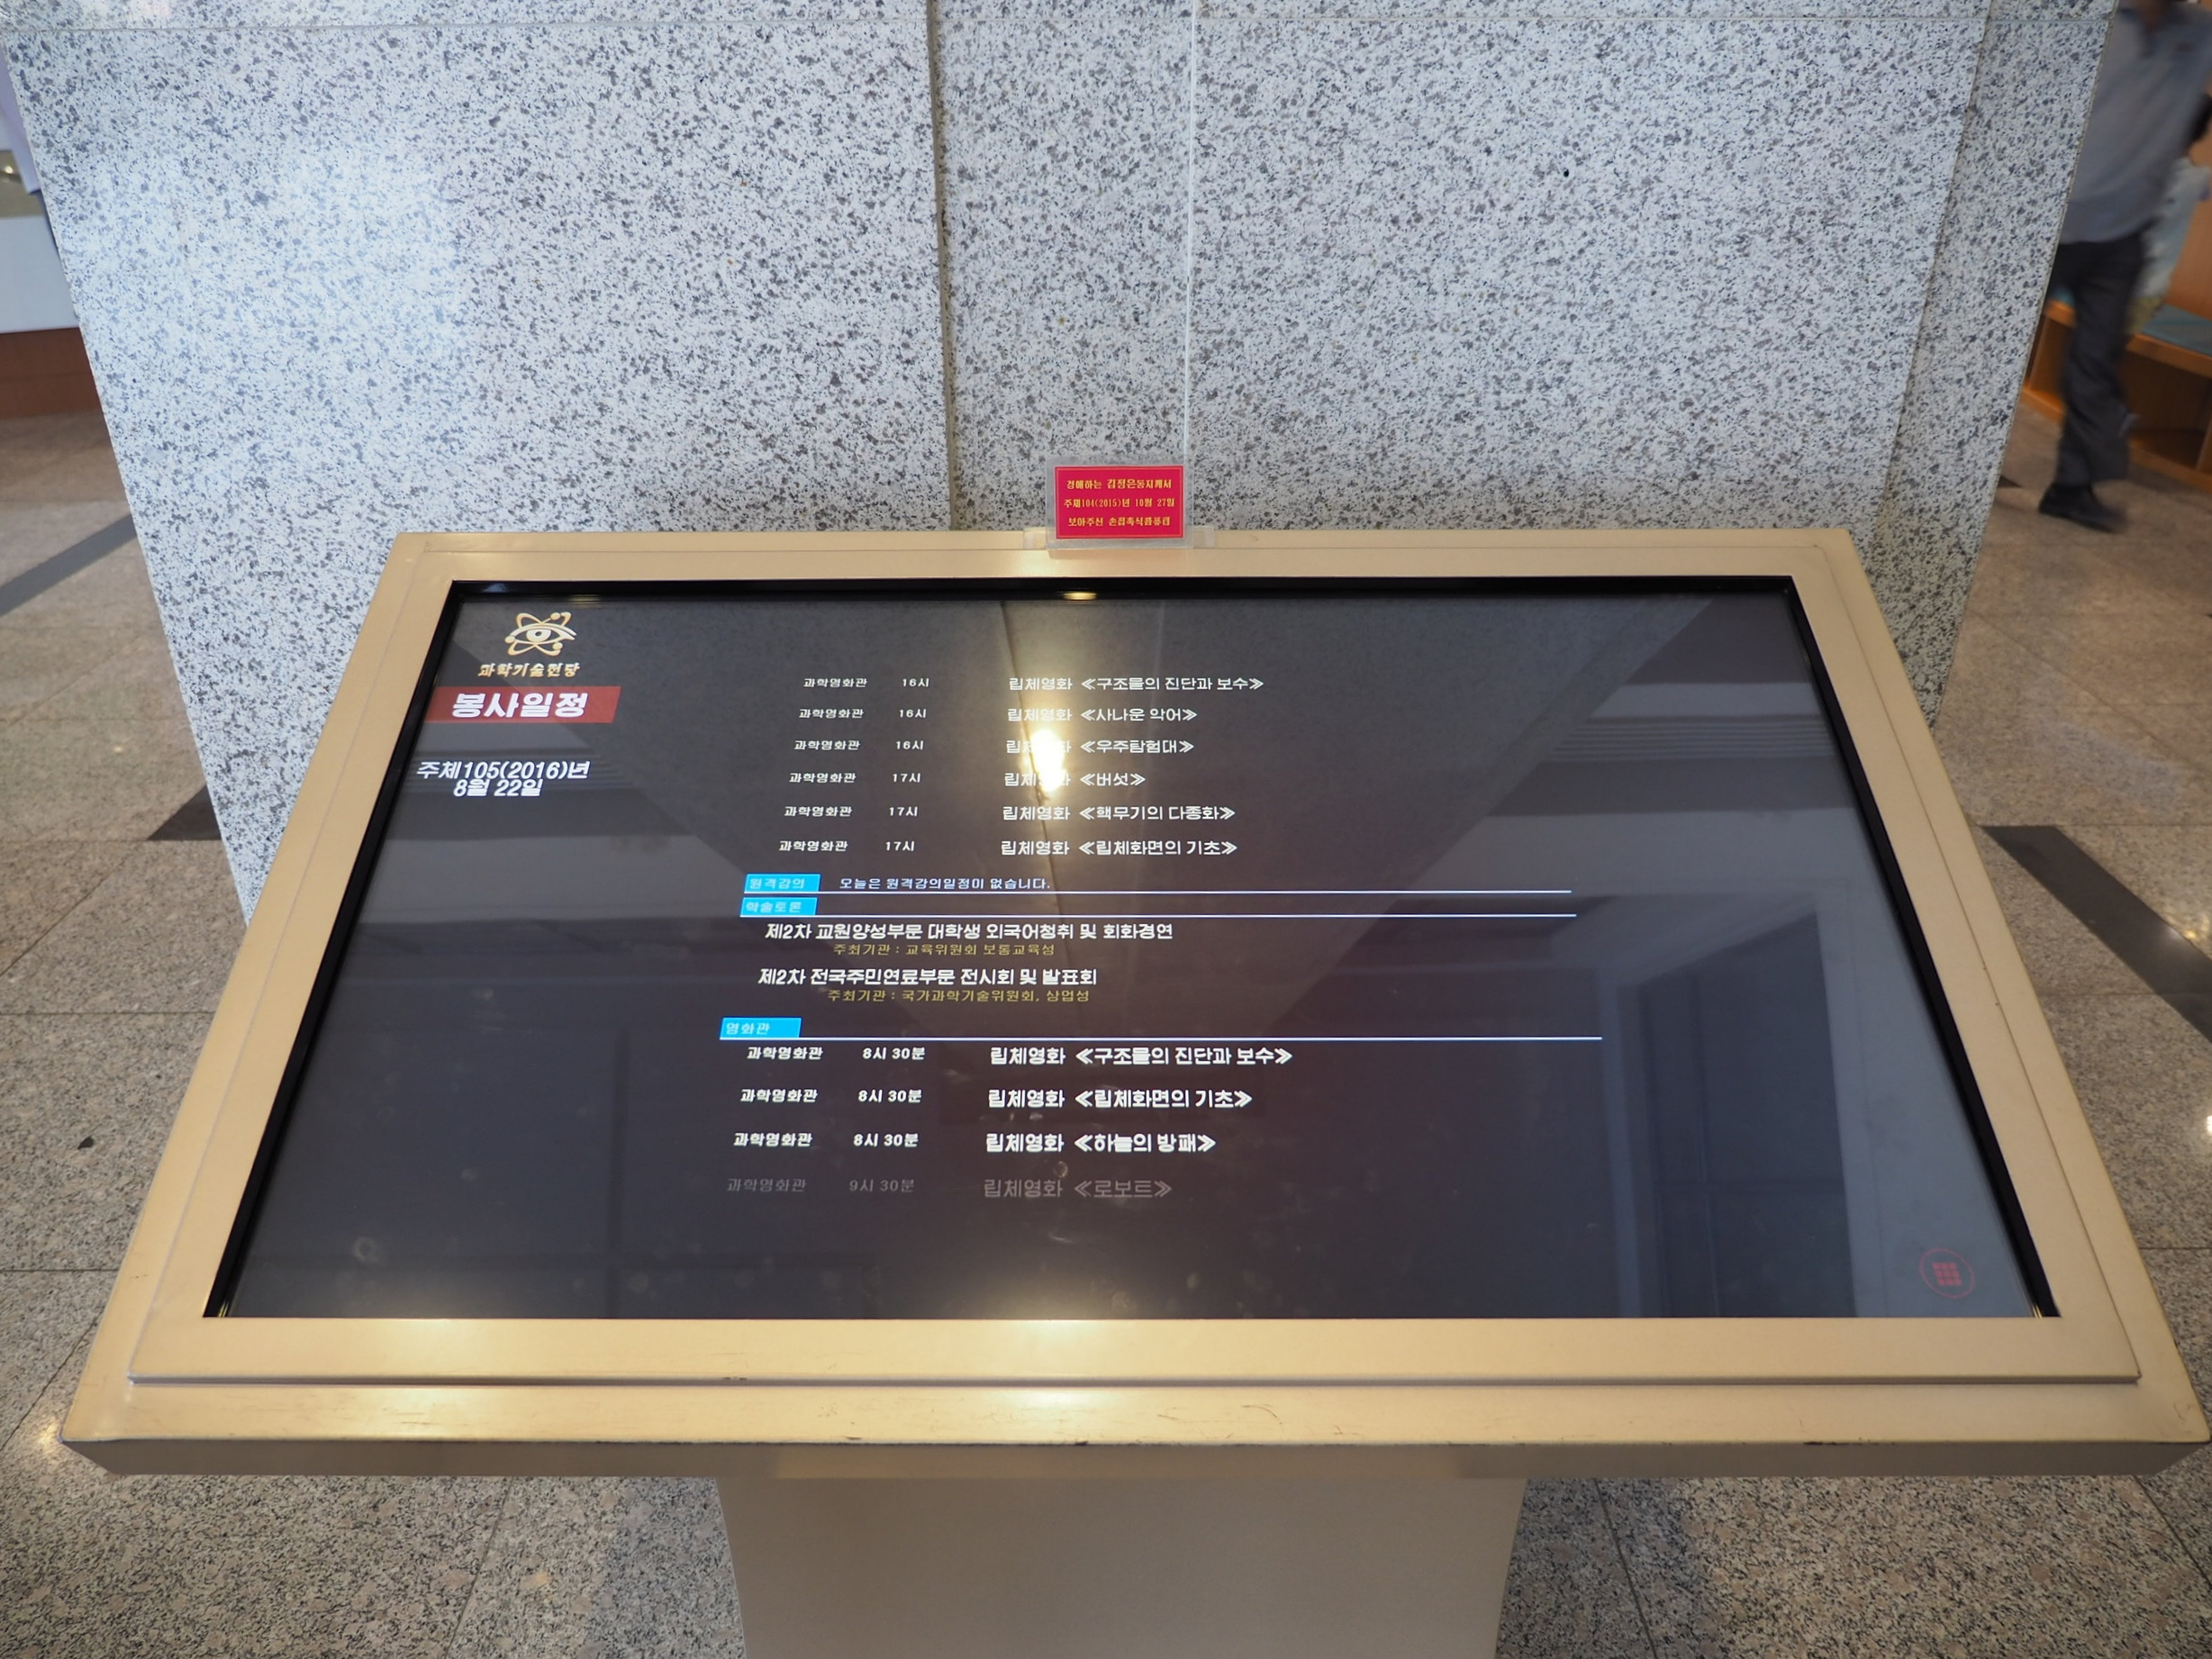 Tablet for event listings and navigation